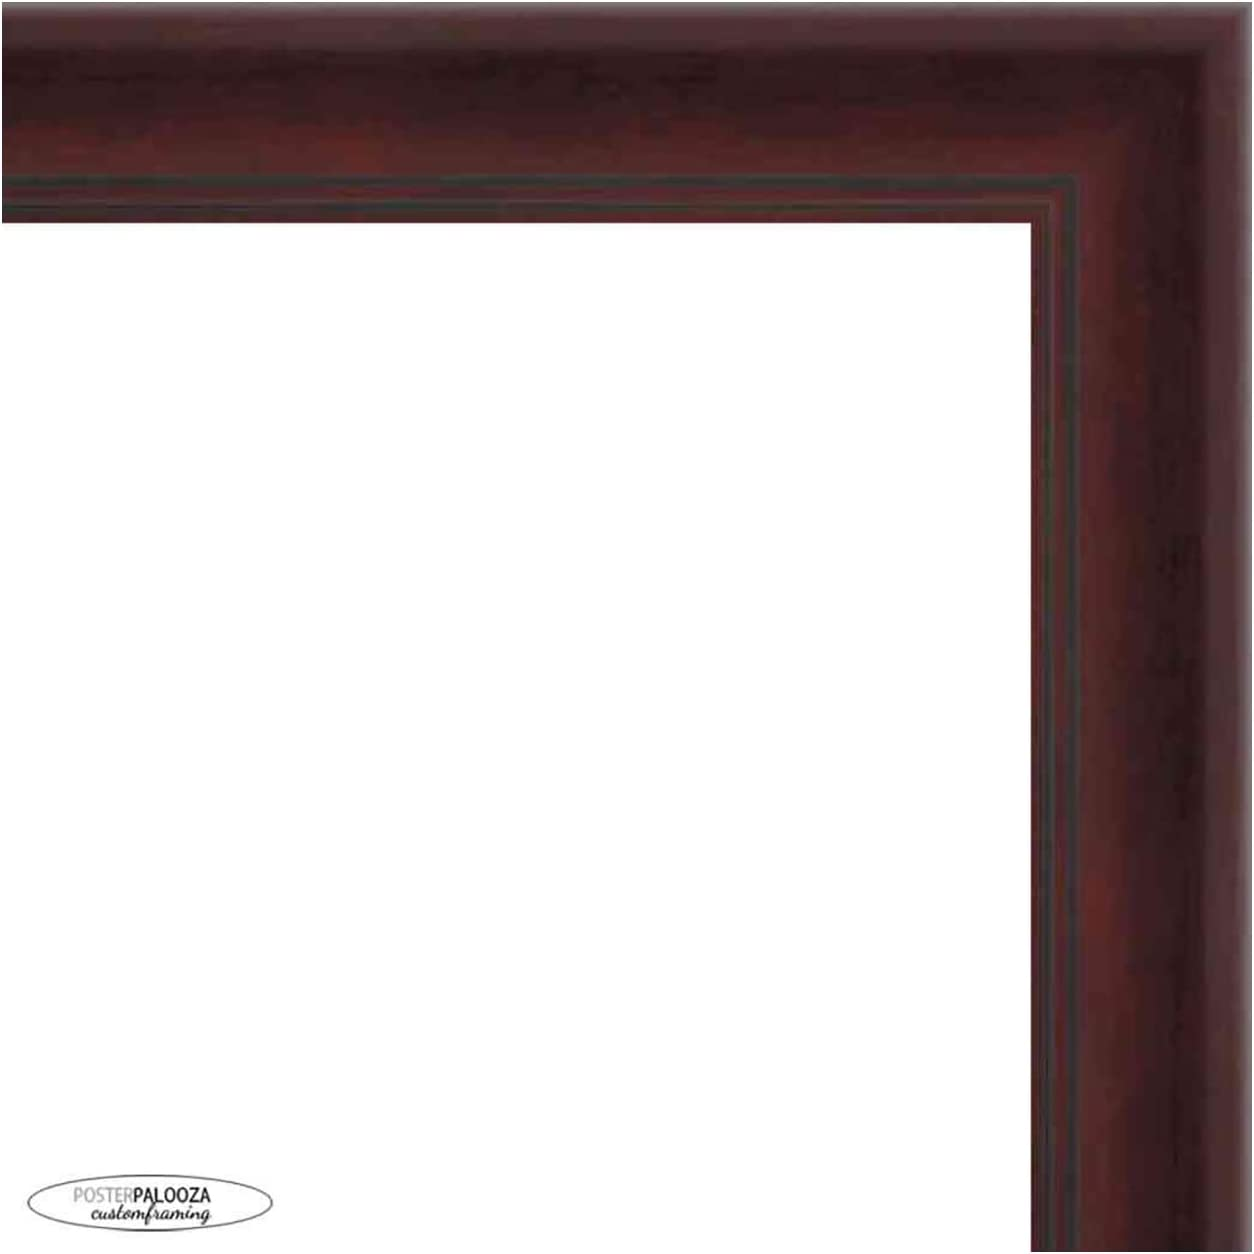 40x13.5 Contemporary Mahogany Wood Picture UV National Philadelphia Mall products Frame - Panoramic